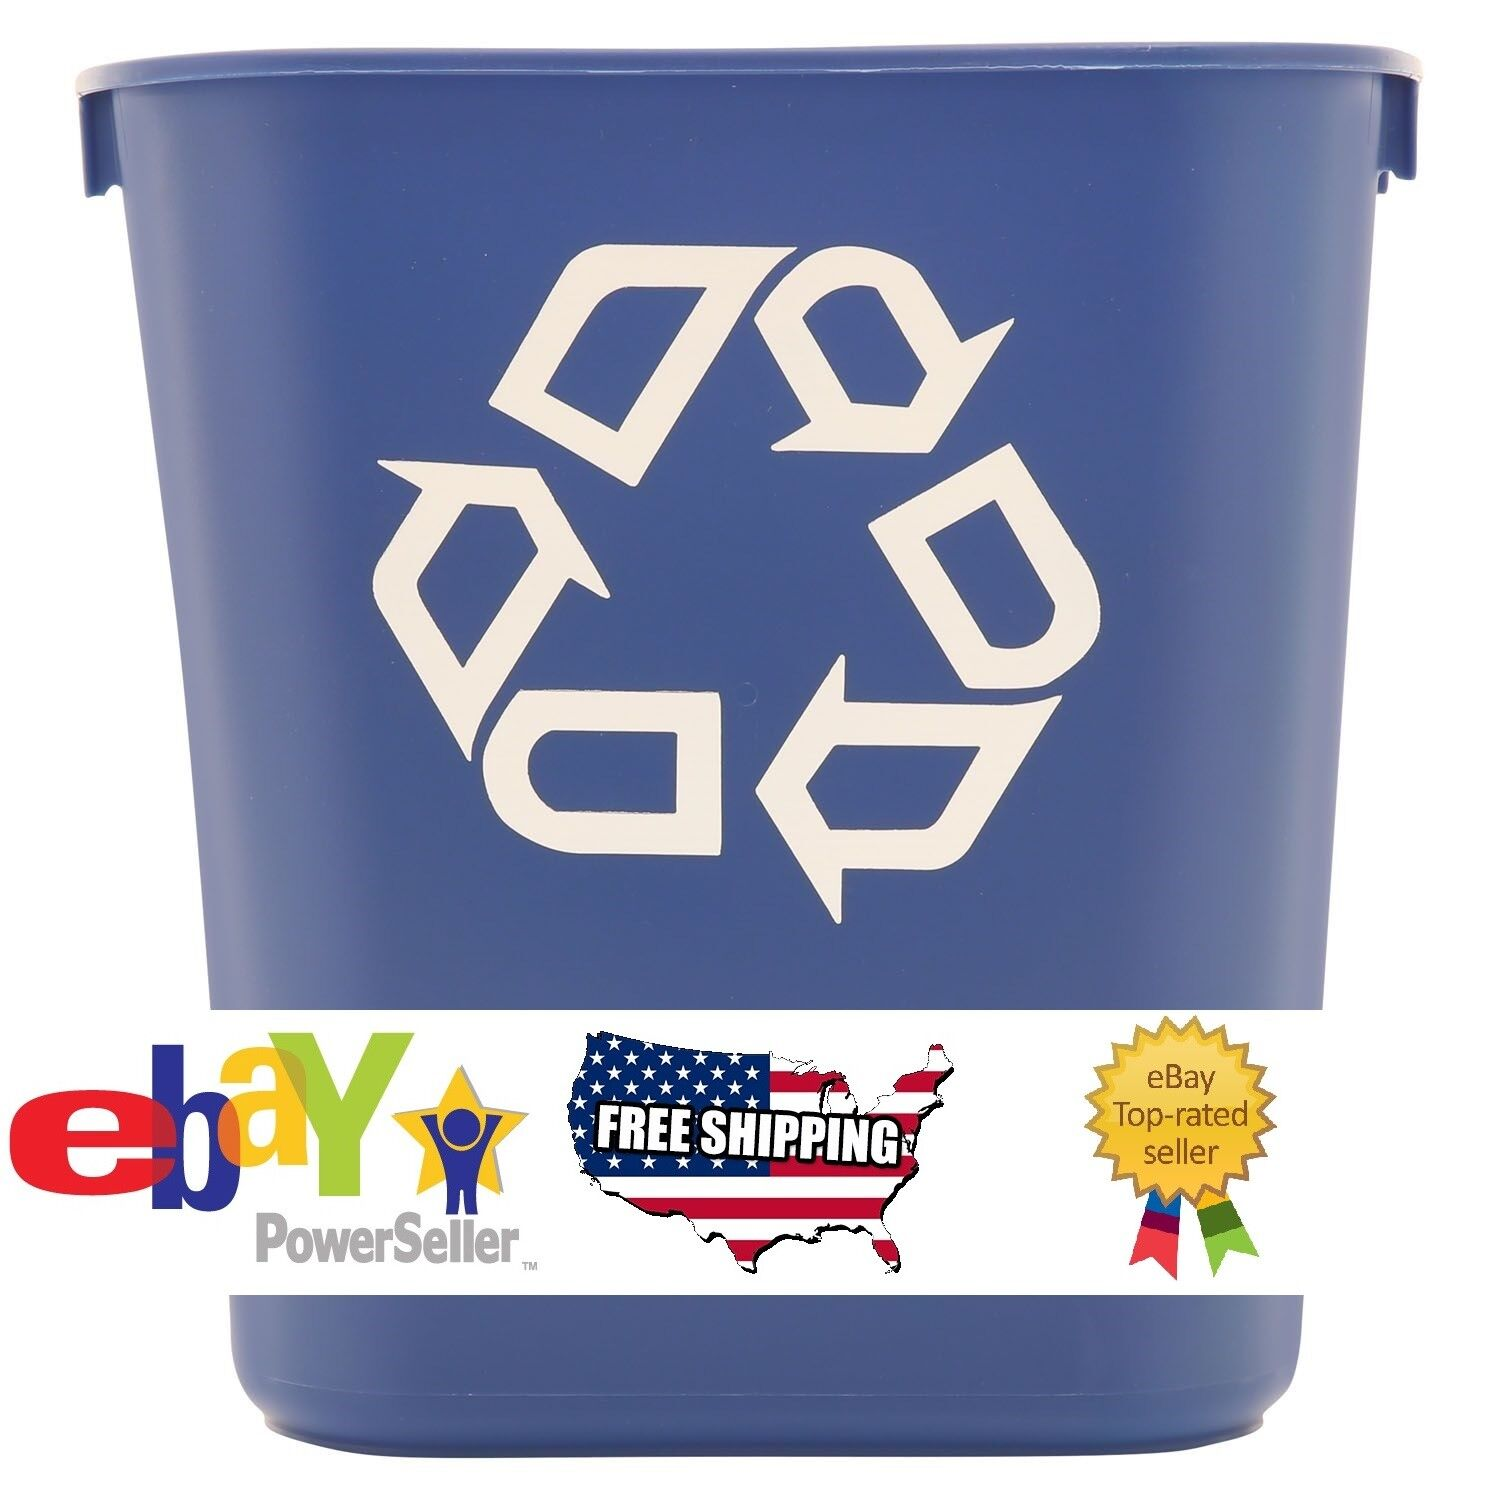 2-Pack Rubbermaid Commercial Recycling Bin Plastic Container